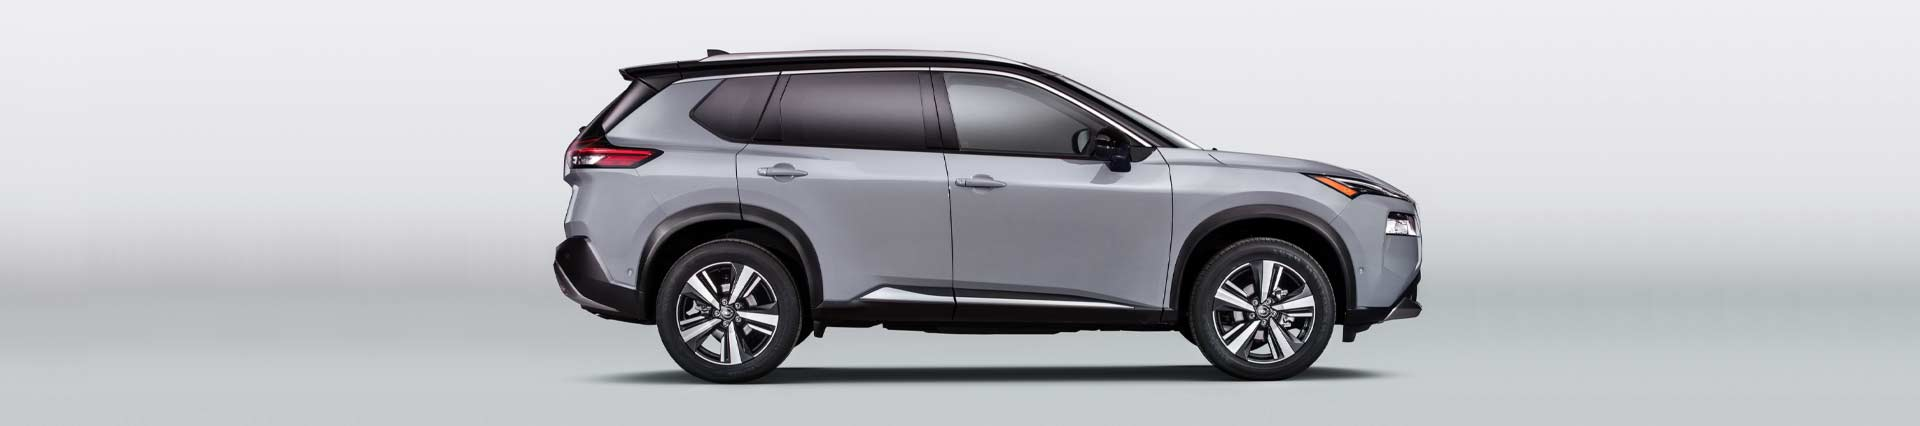 2021 Nissan Rogue Side View